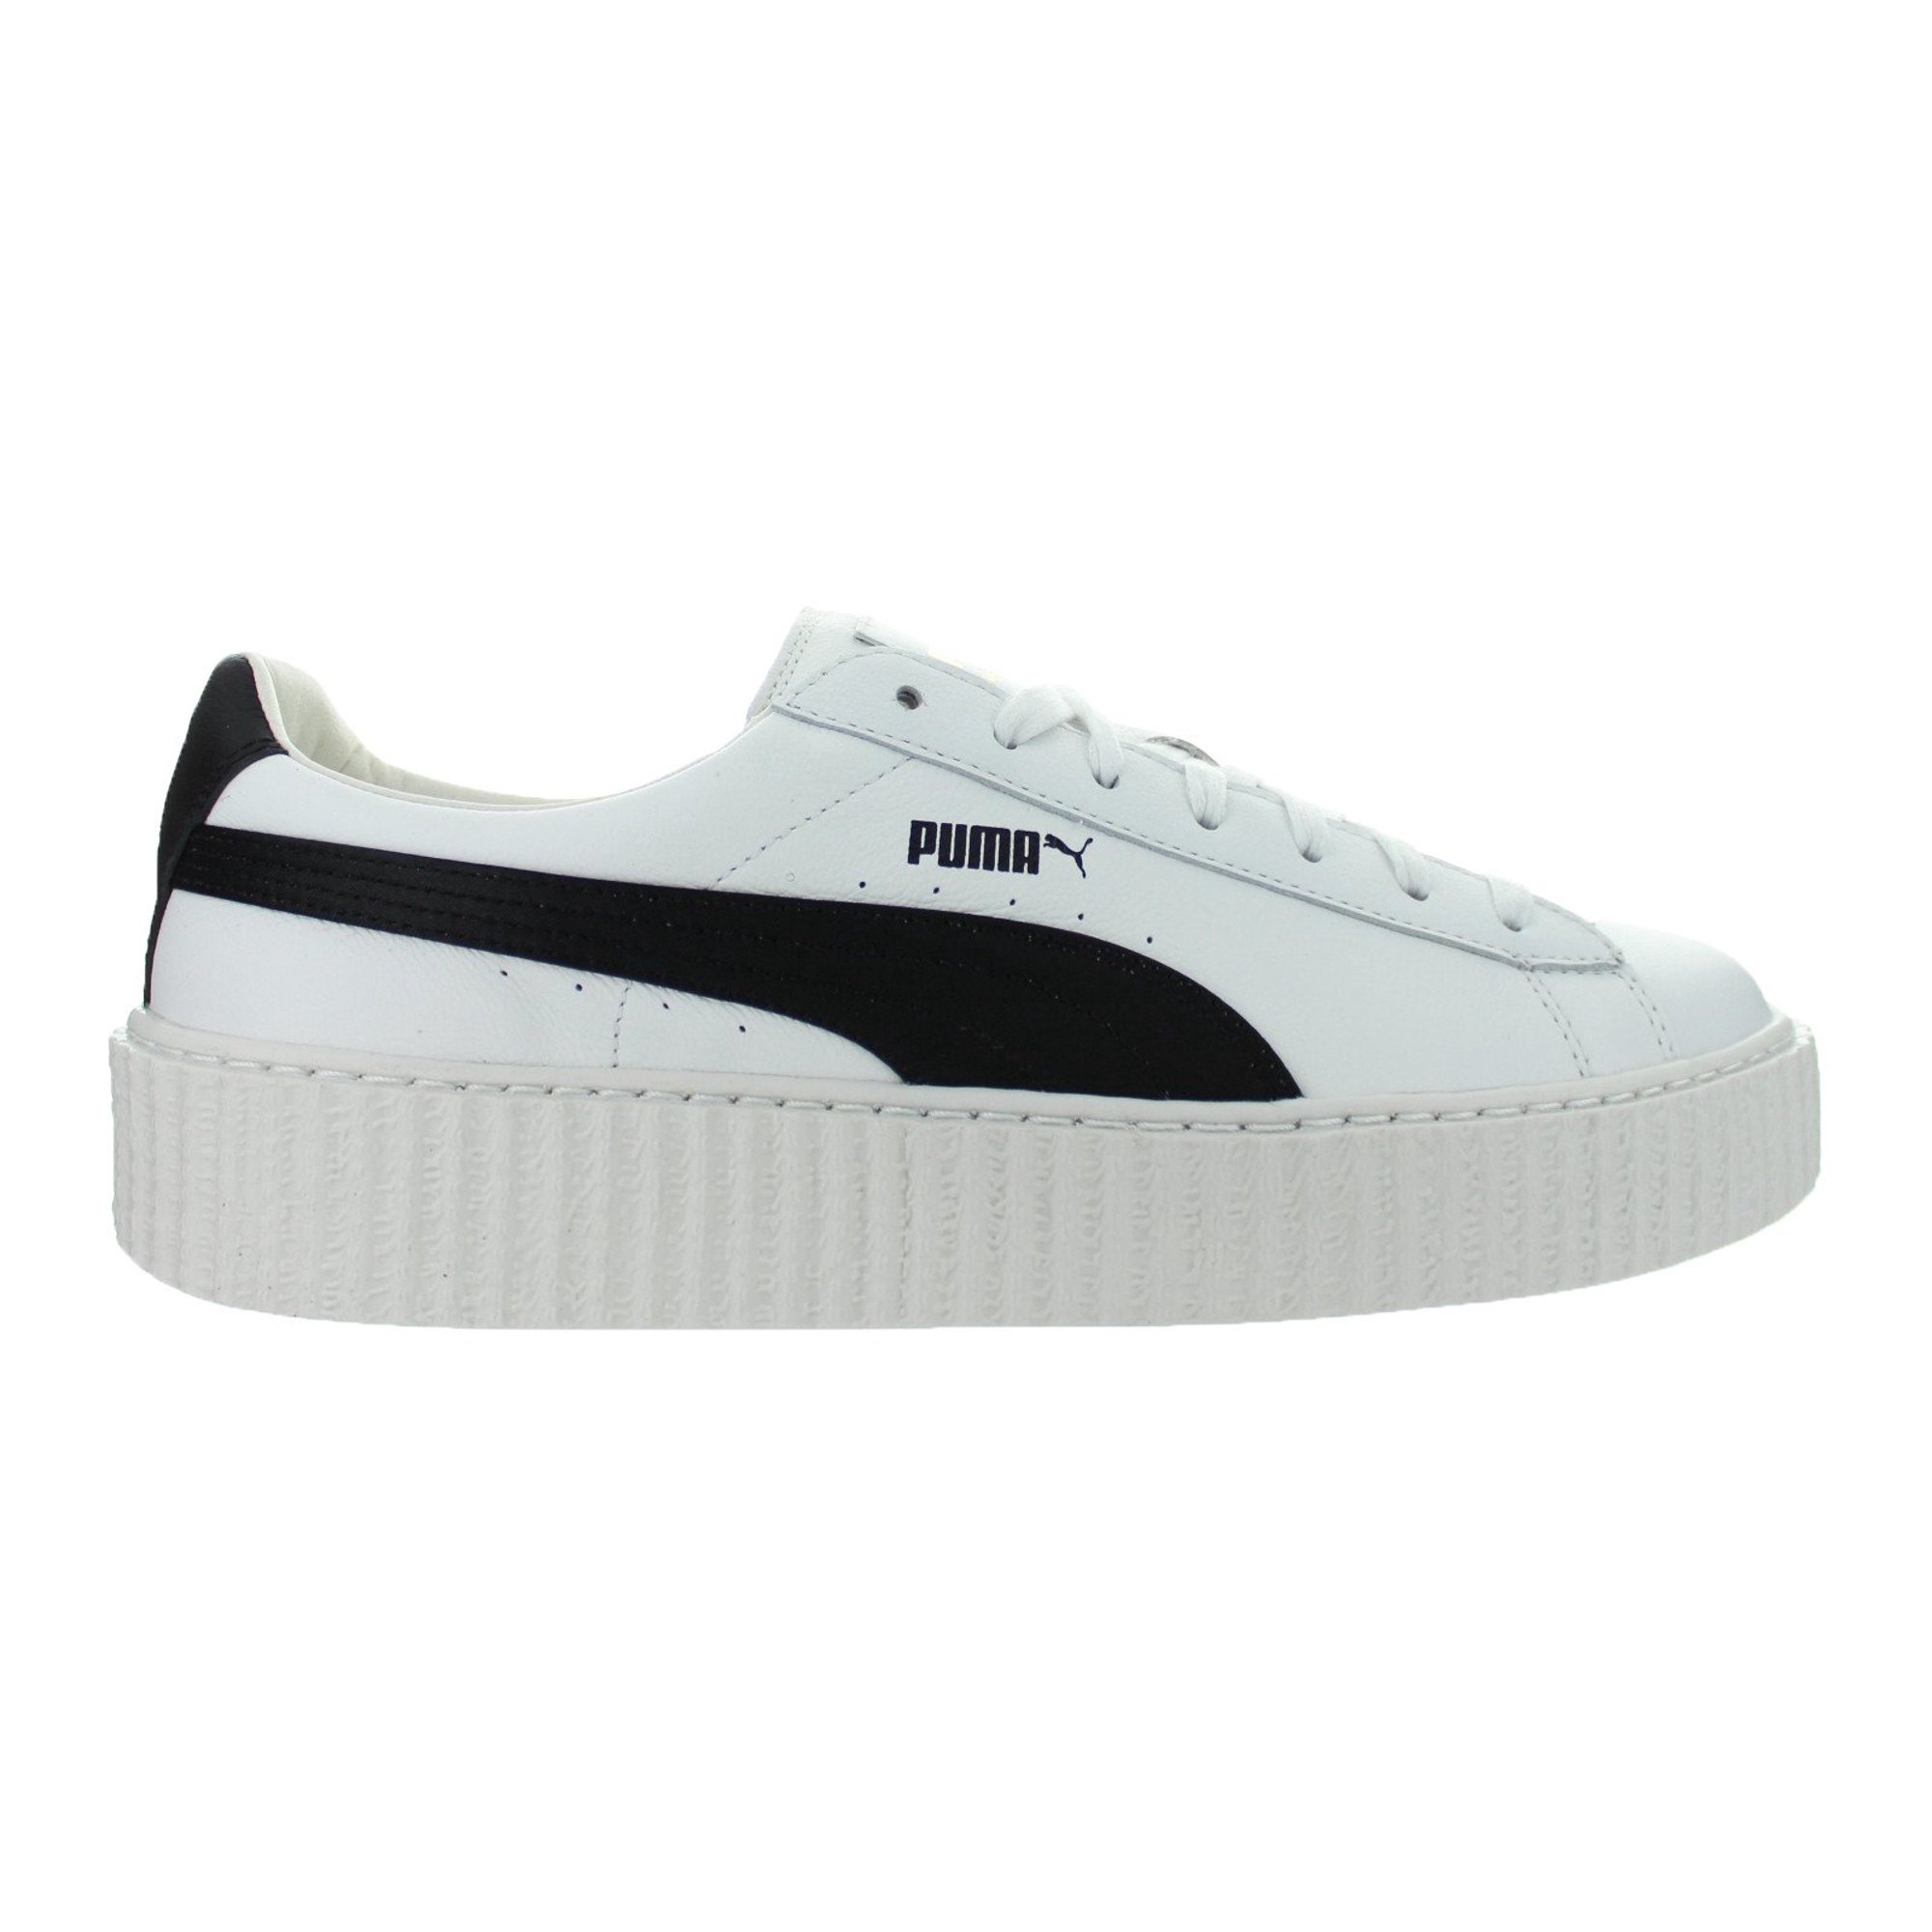 069c91e0bbbf Mens Puma x Fenty By Rihanna Creeper Leather Puma White Puma Black 364